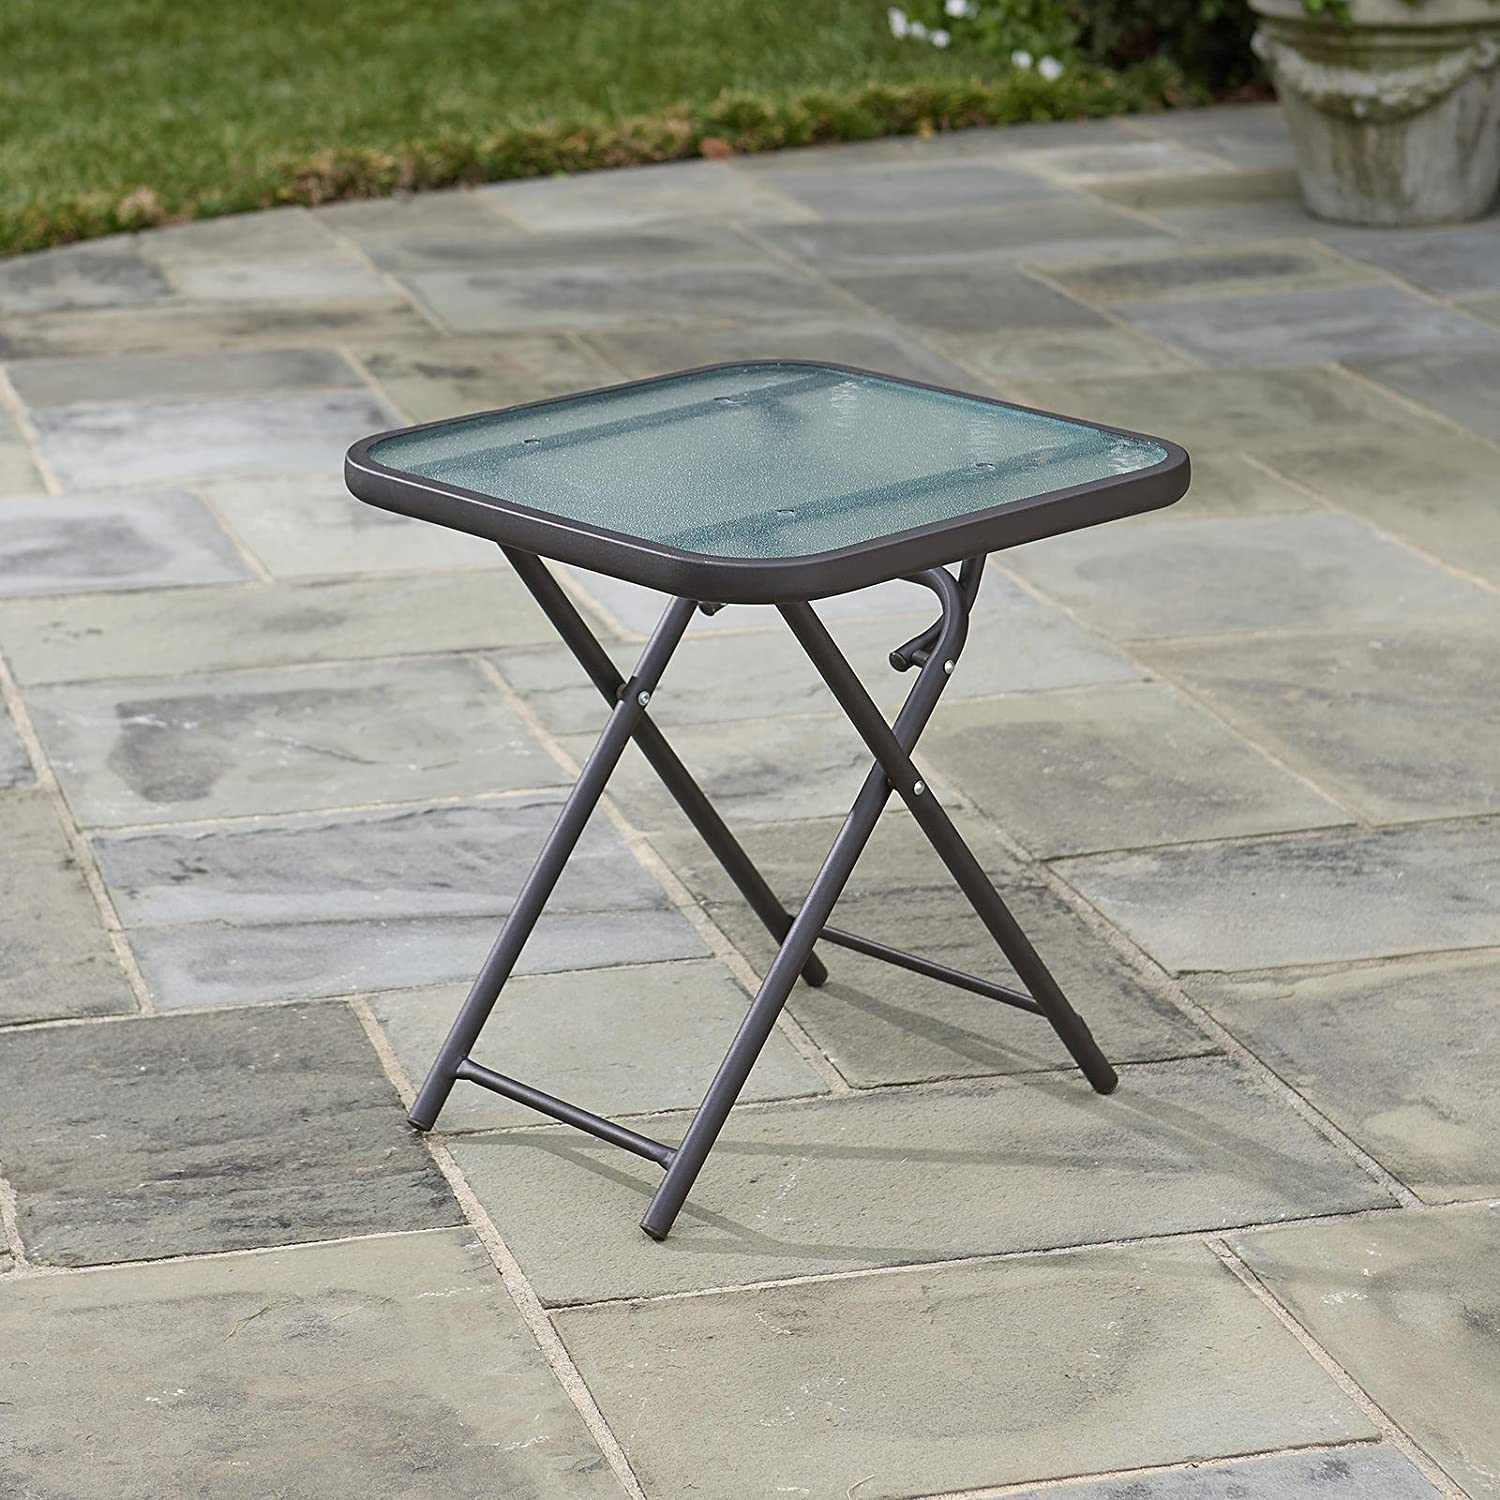 New Patio Side Table with Umbrella Hole